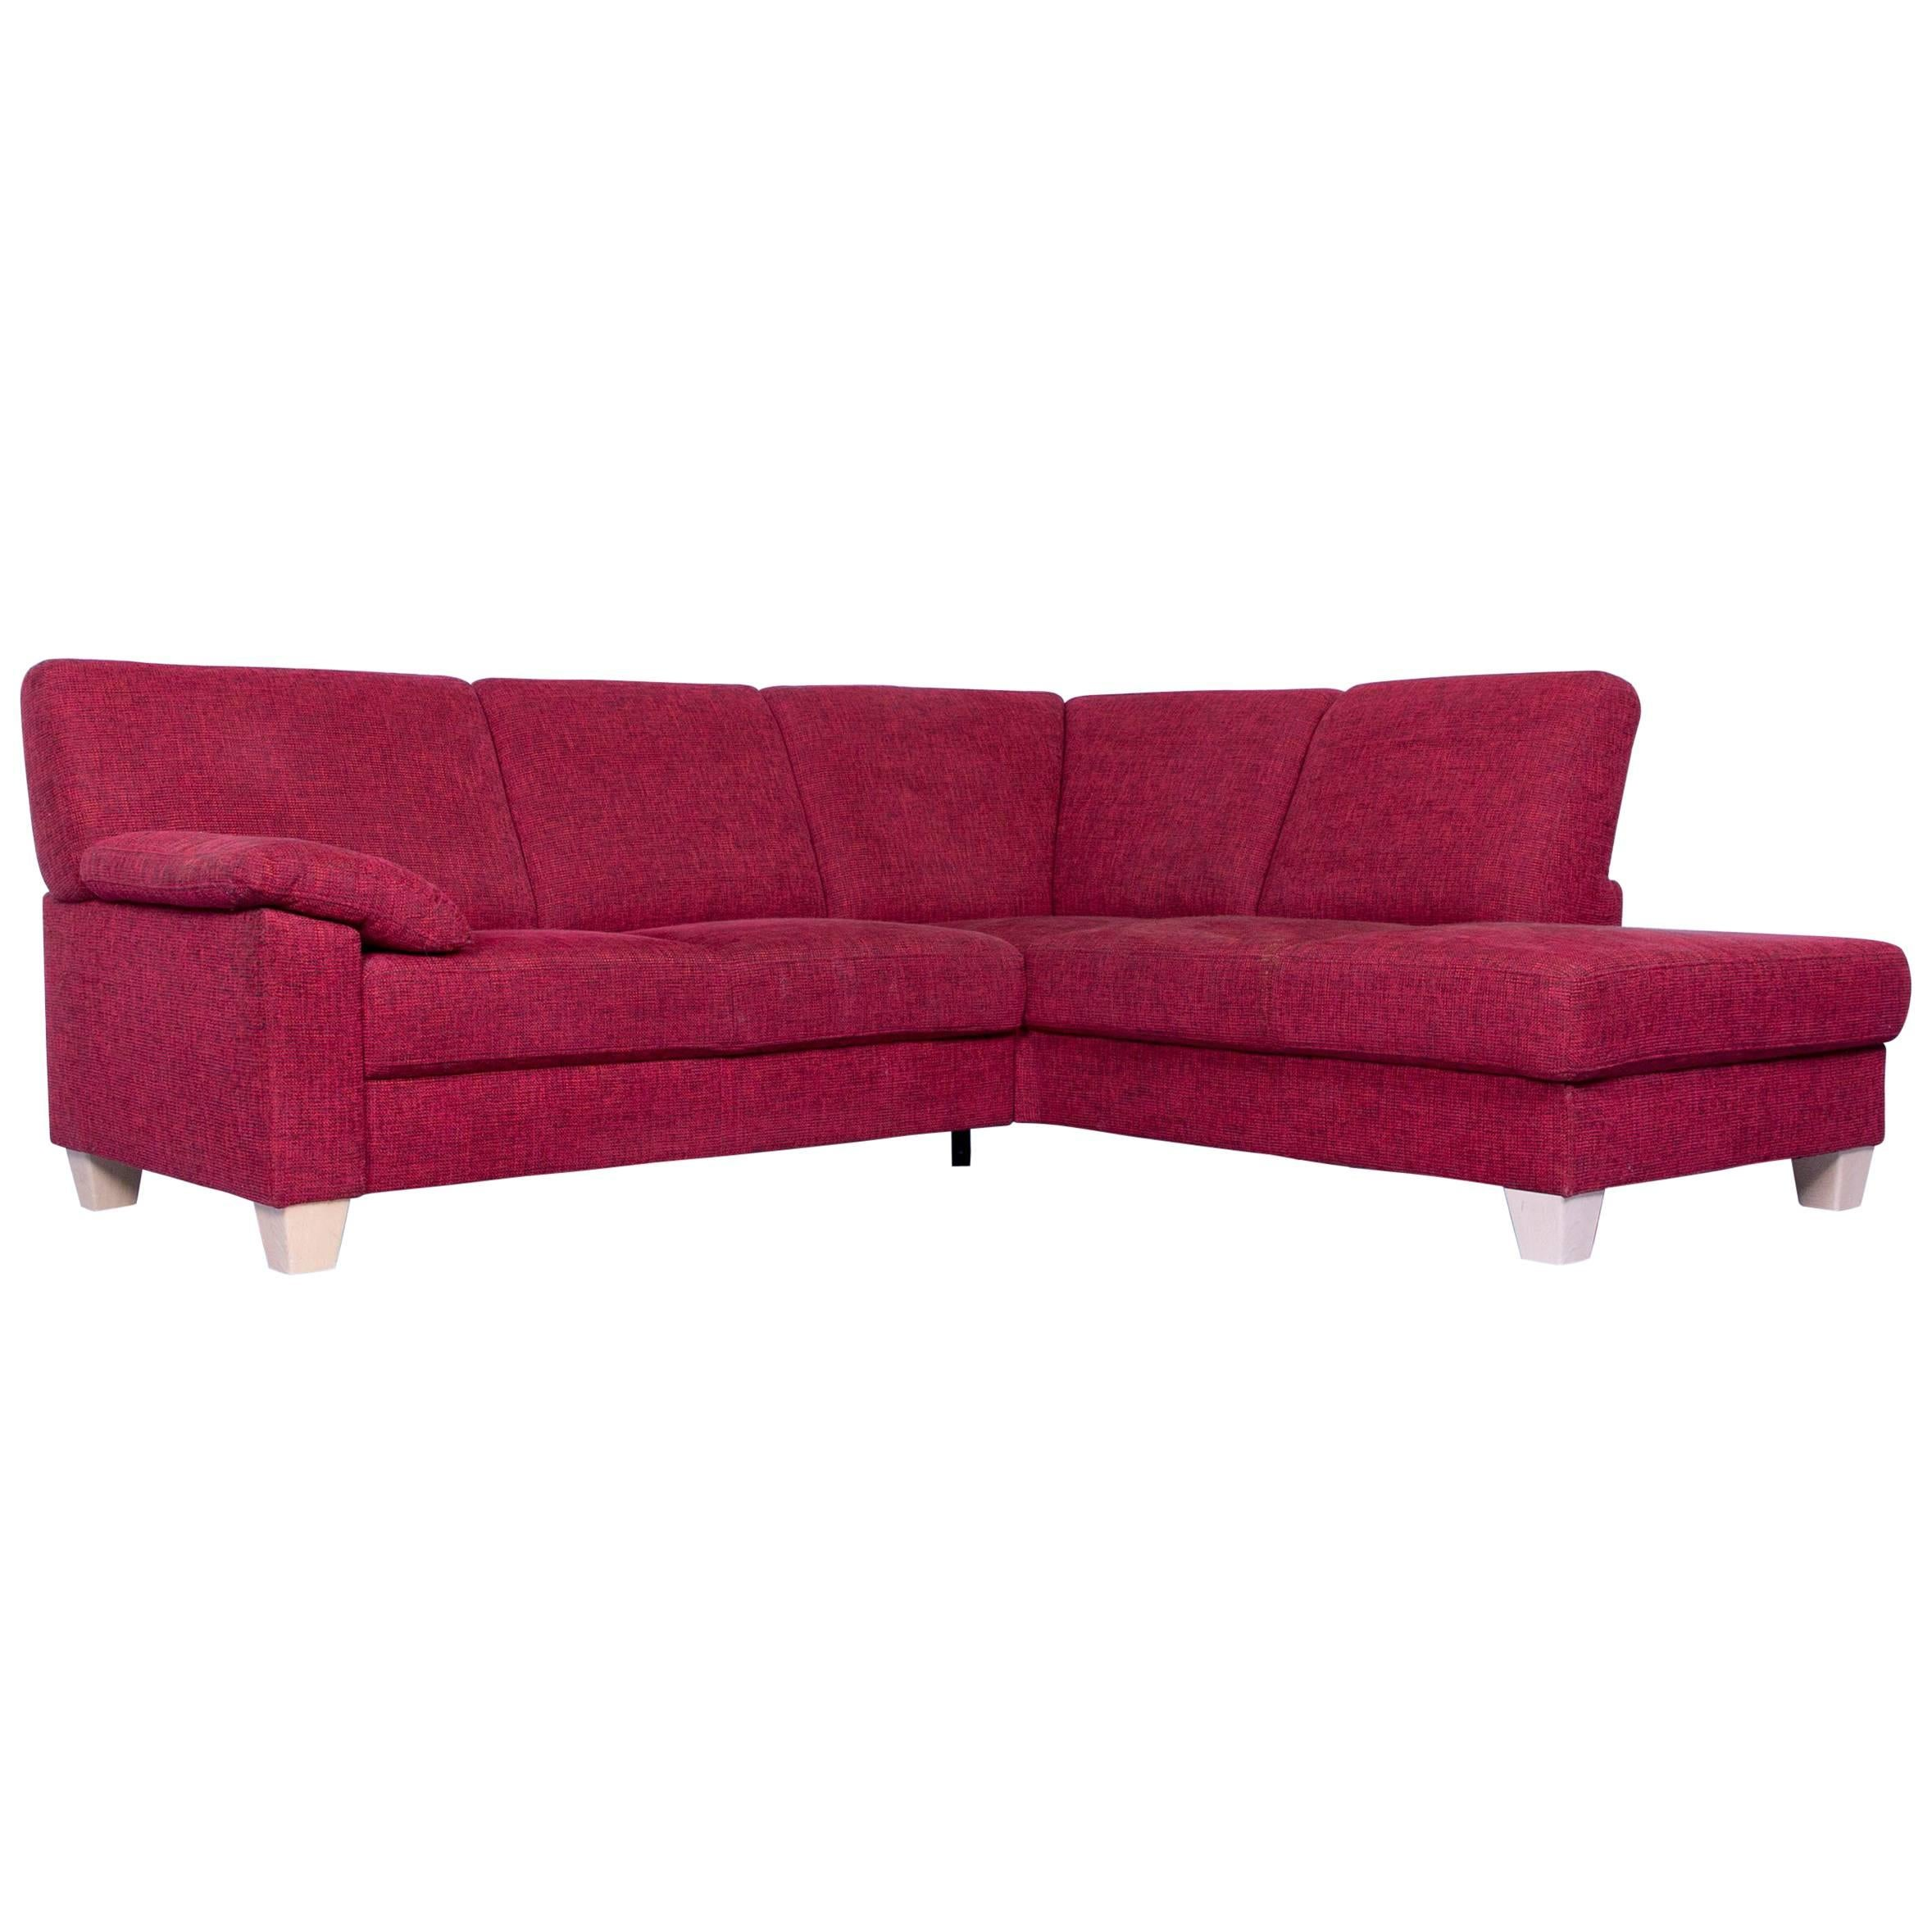 Ewald Schillig Designer Corner Sofa Fabric Red Couch Modern Wood